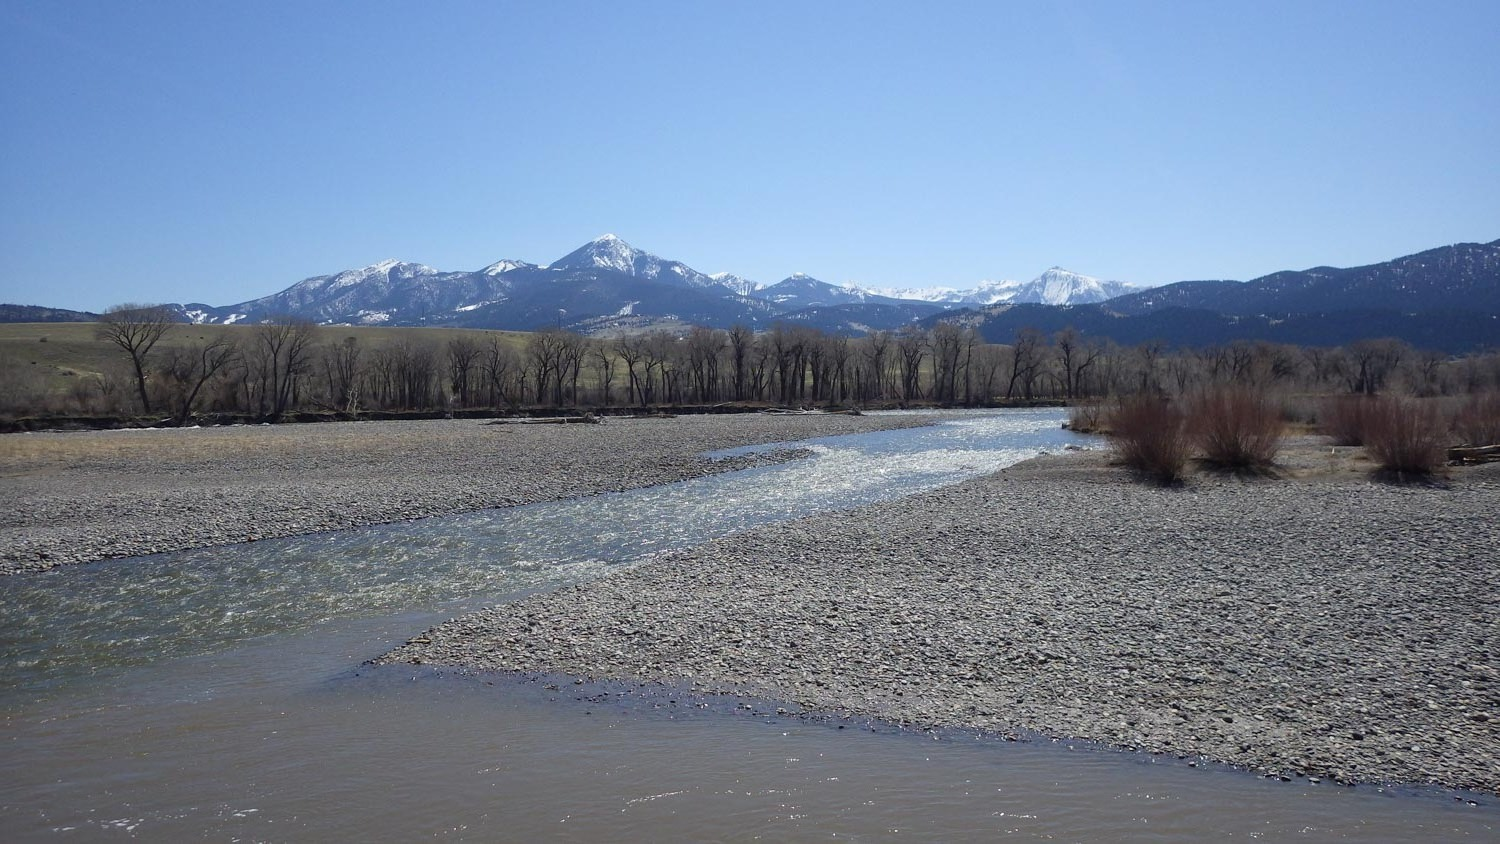 Yellowstone River flowing through rocky banks with mountains in the background